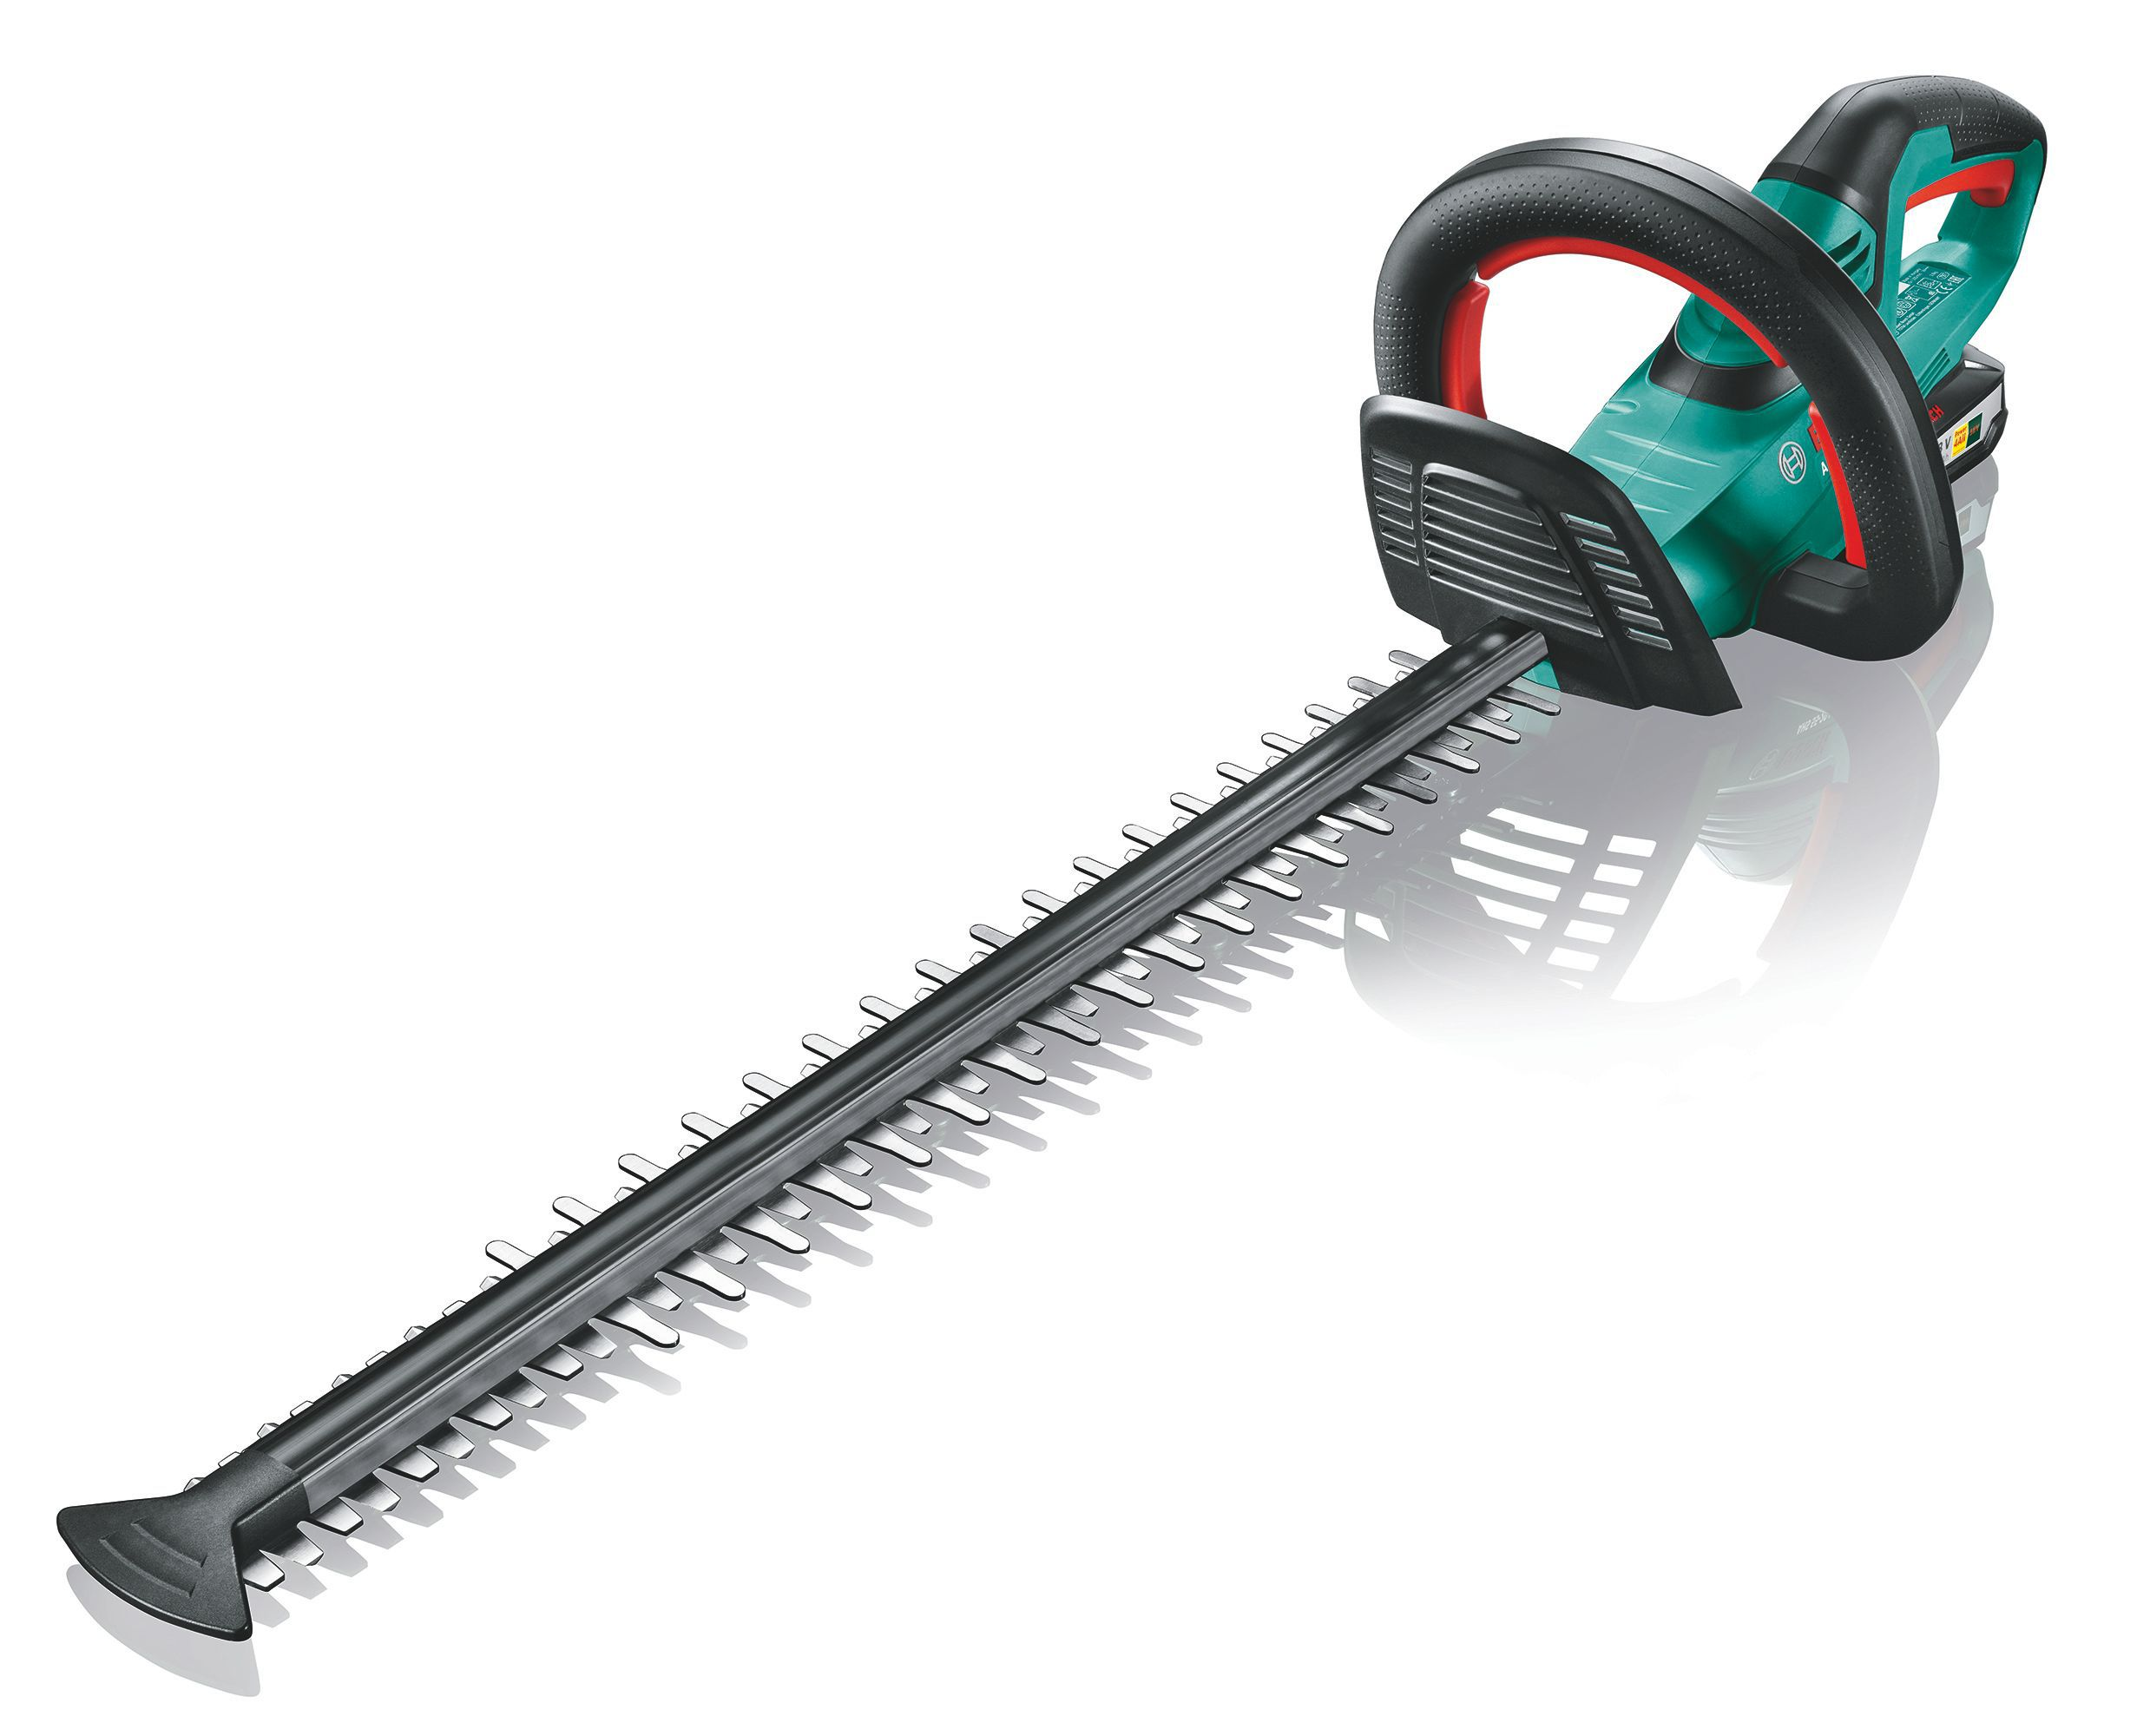 Bosch Ahs 55-20 Li Battery Cordless Lithium-ion Hedge Trimmer